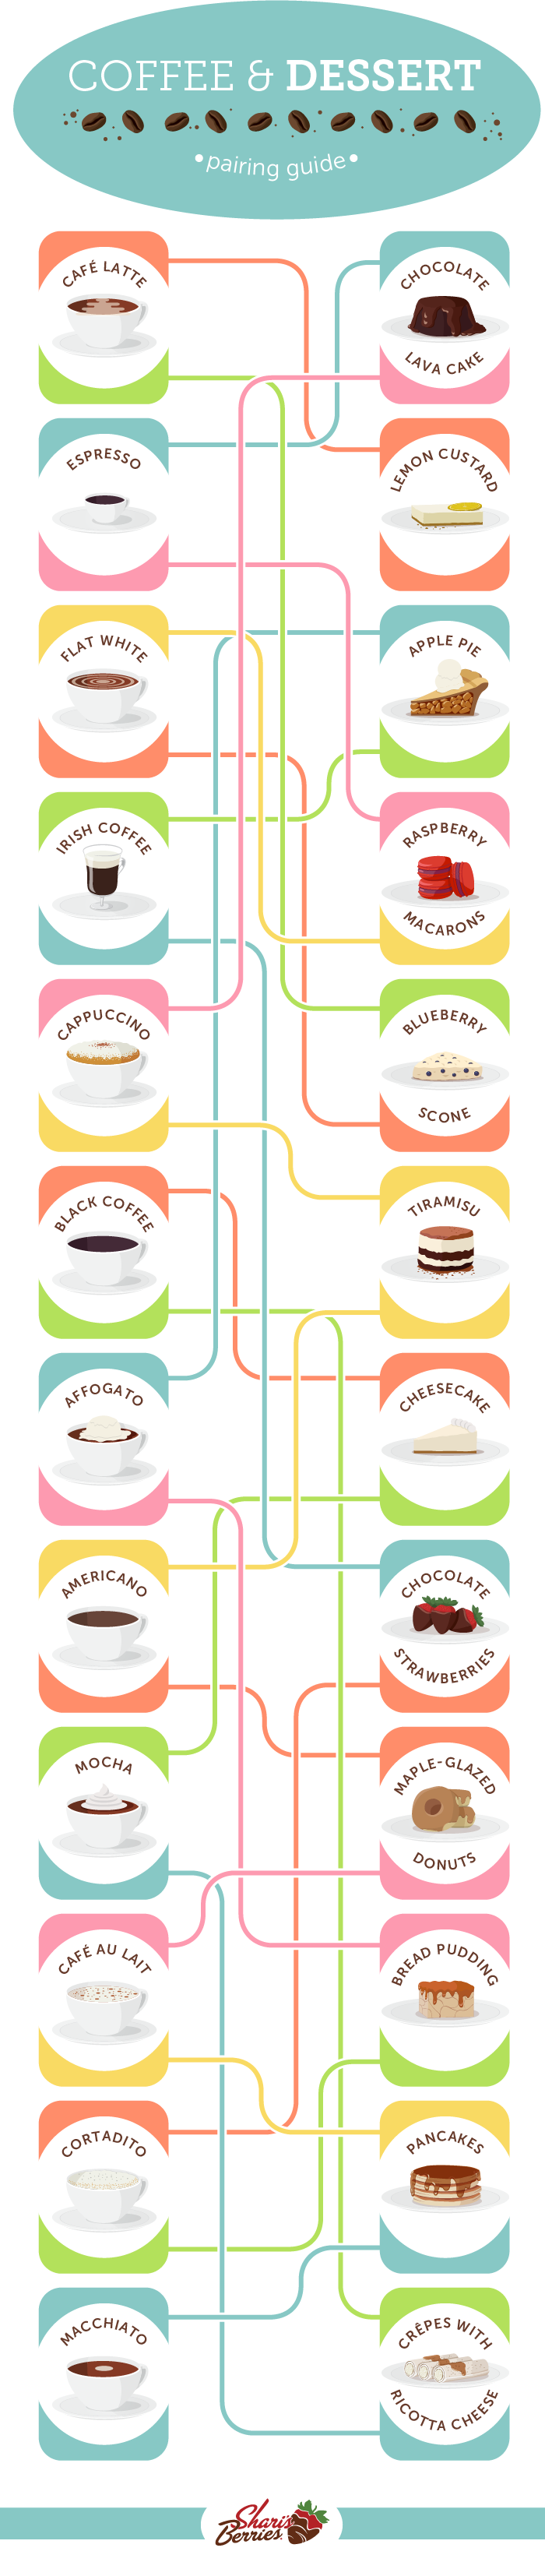 Coffee and Dessert Pairing Guide